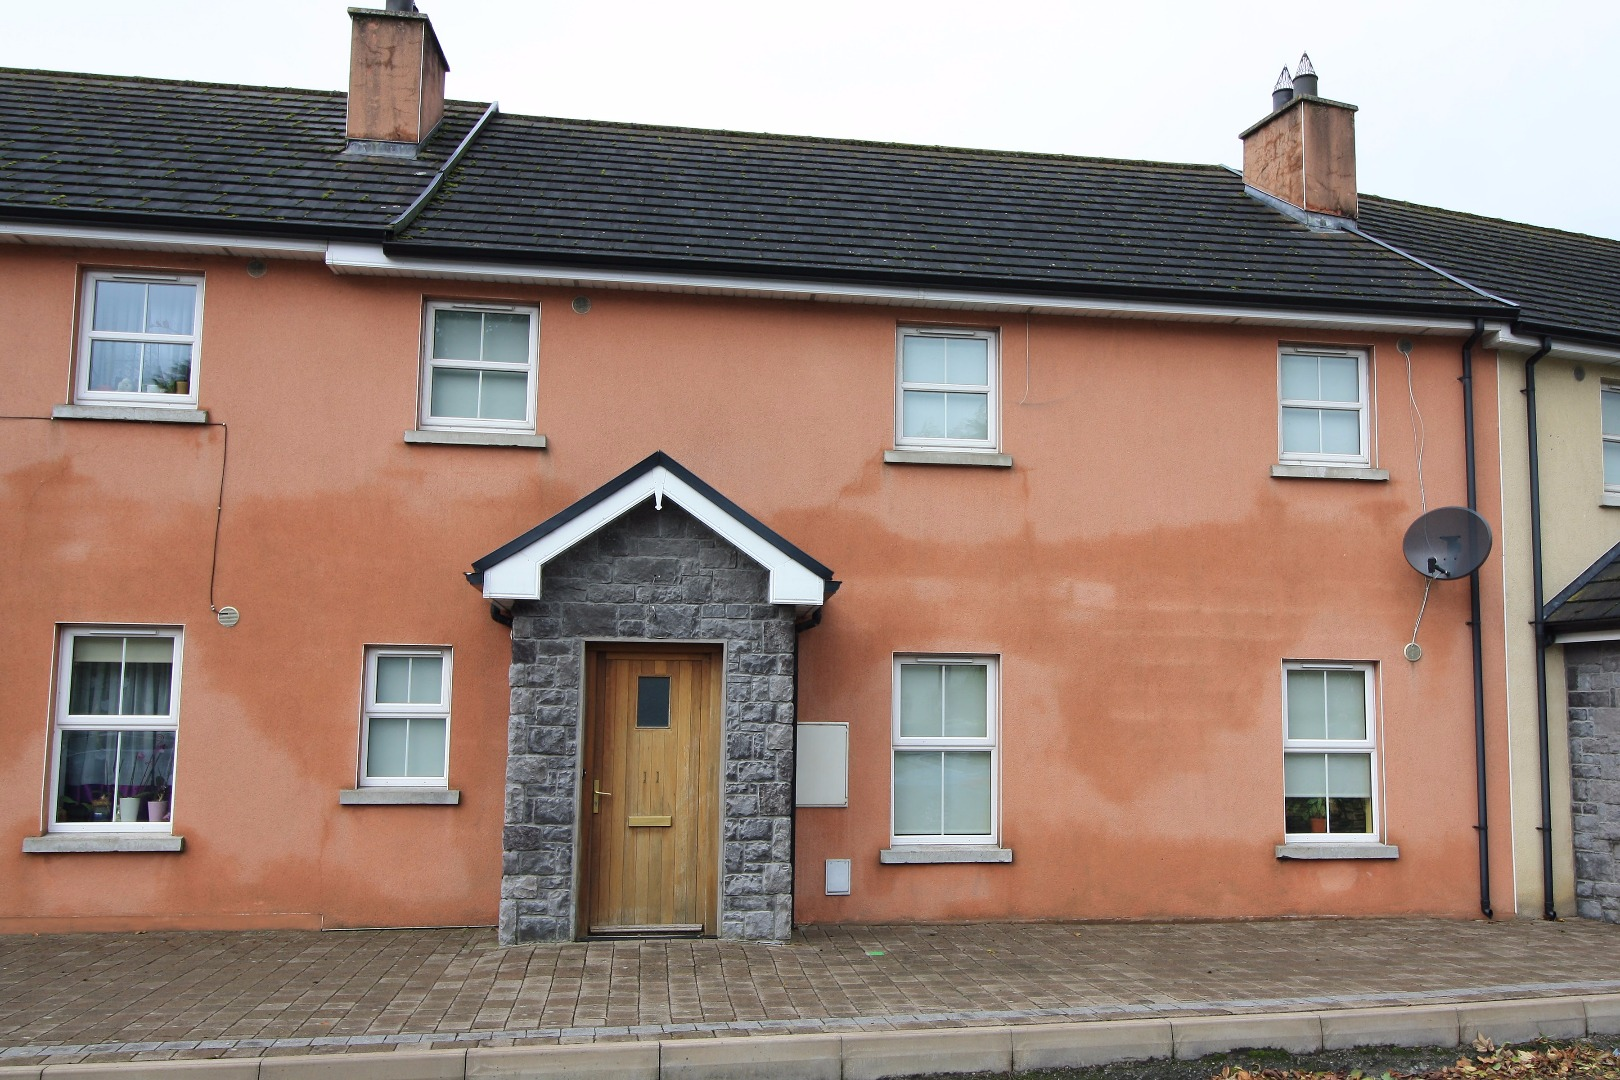 3 bed Terraced for sale on No.11 Englewood Drive, Shercock, Co. Cavan - Property Image 1